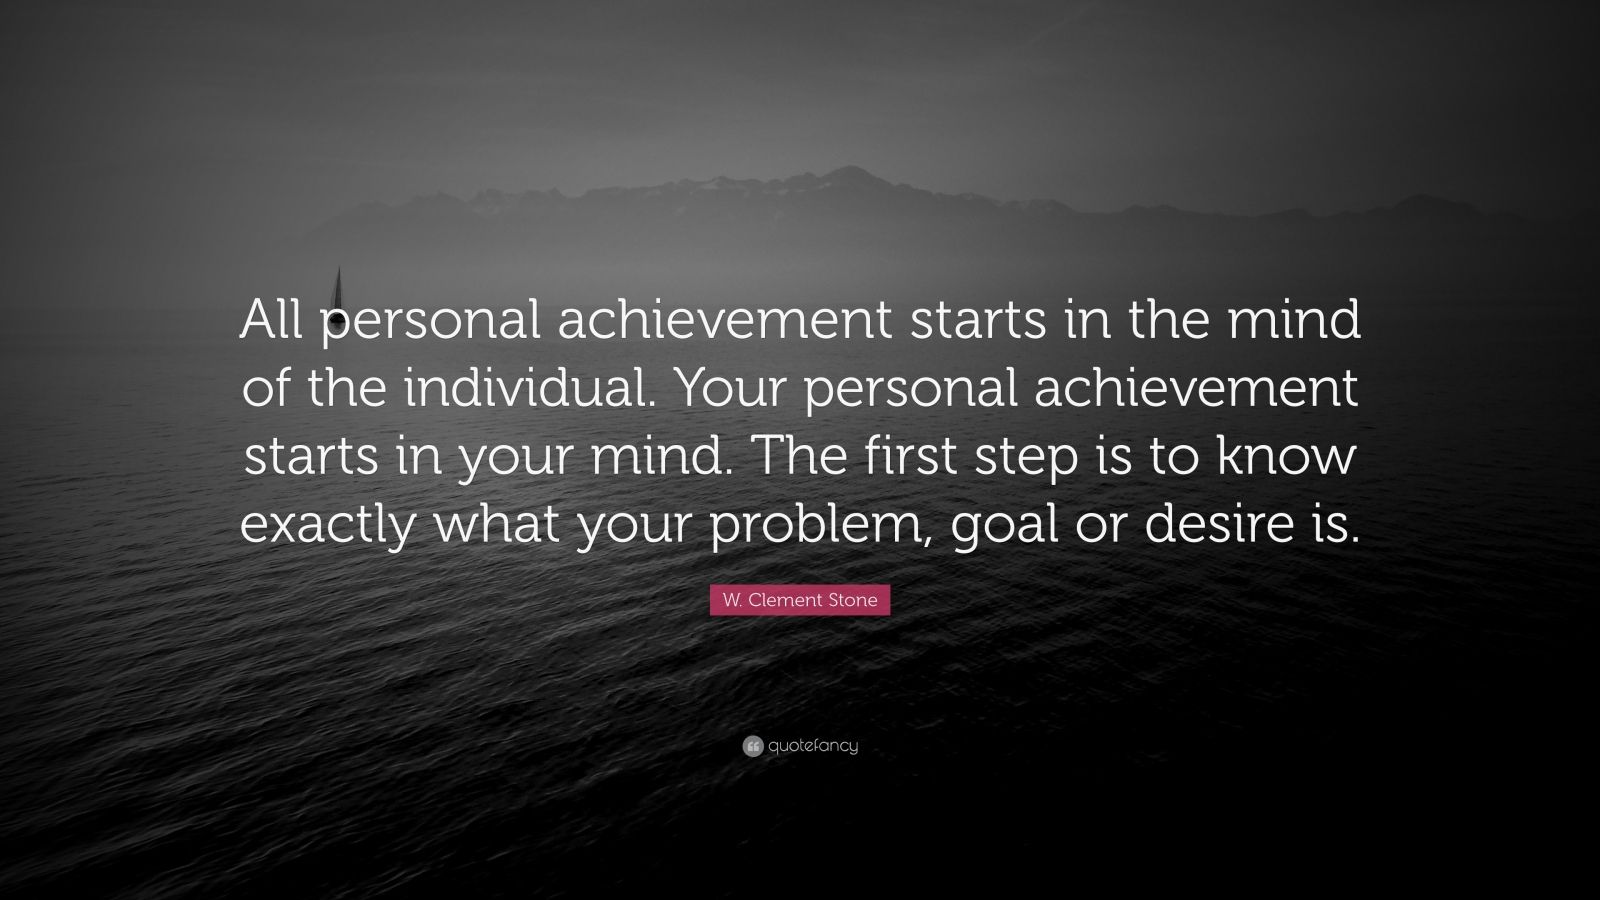 "W. Clement Stone Quote: ""All personal achievement starts in the mind of the individual. Your personal achievement starts in your mind. The first step is to know exactly what your problem, goal or desire is."""